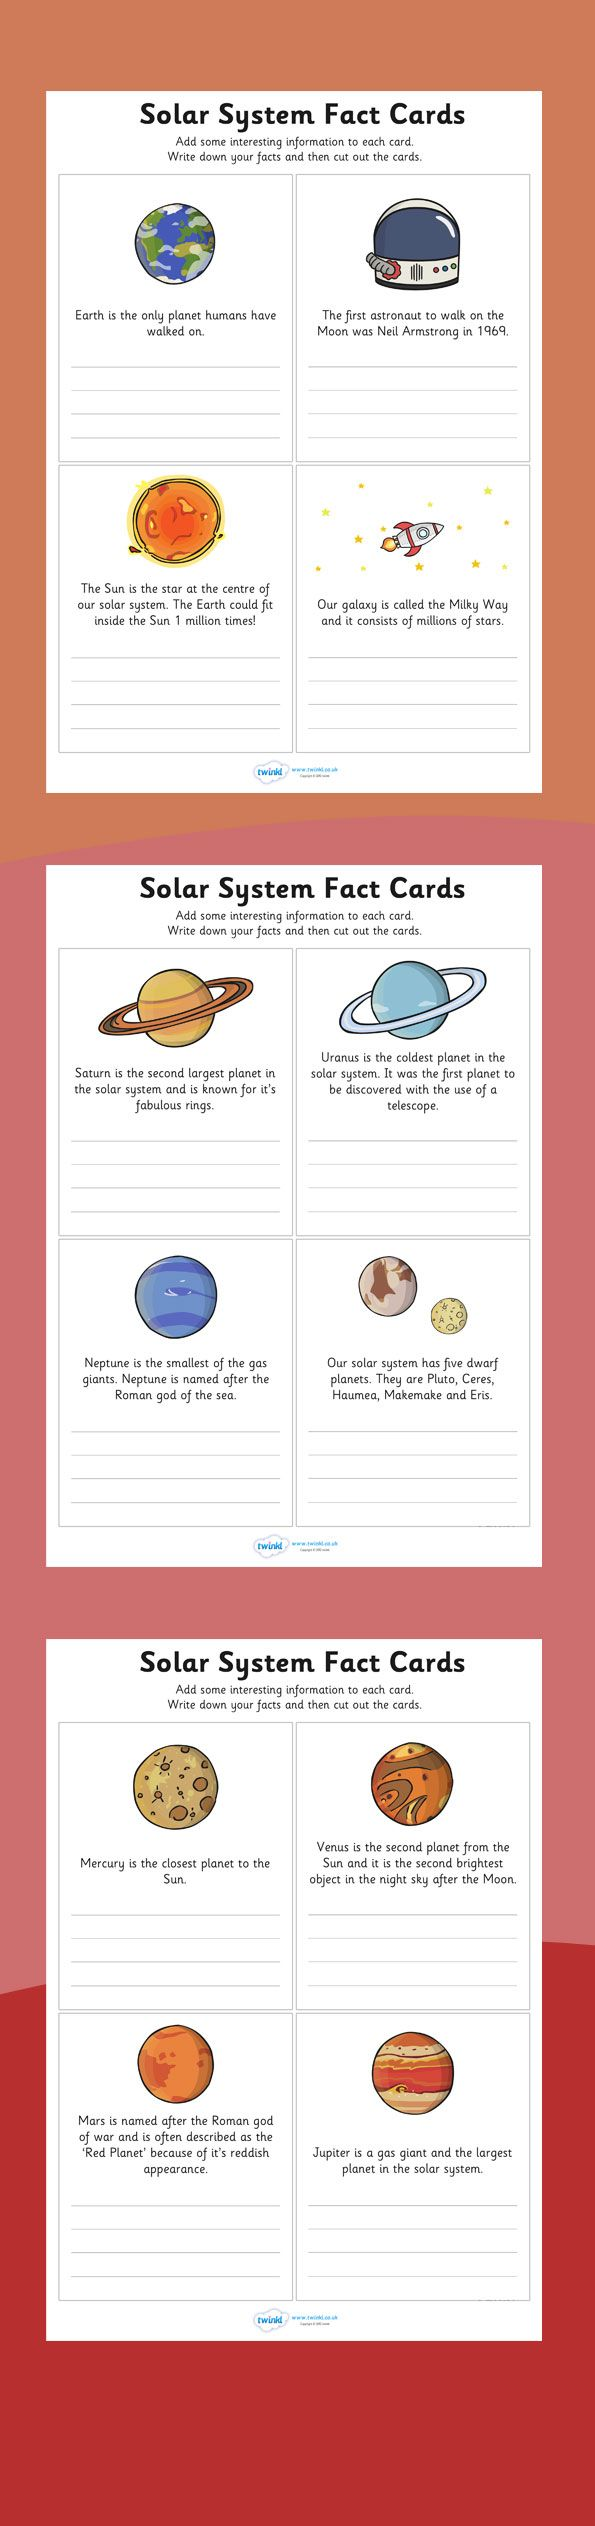 Finish the Solar System Fact Cards - twinkl